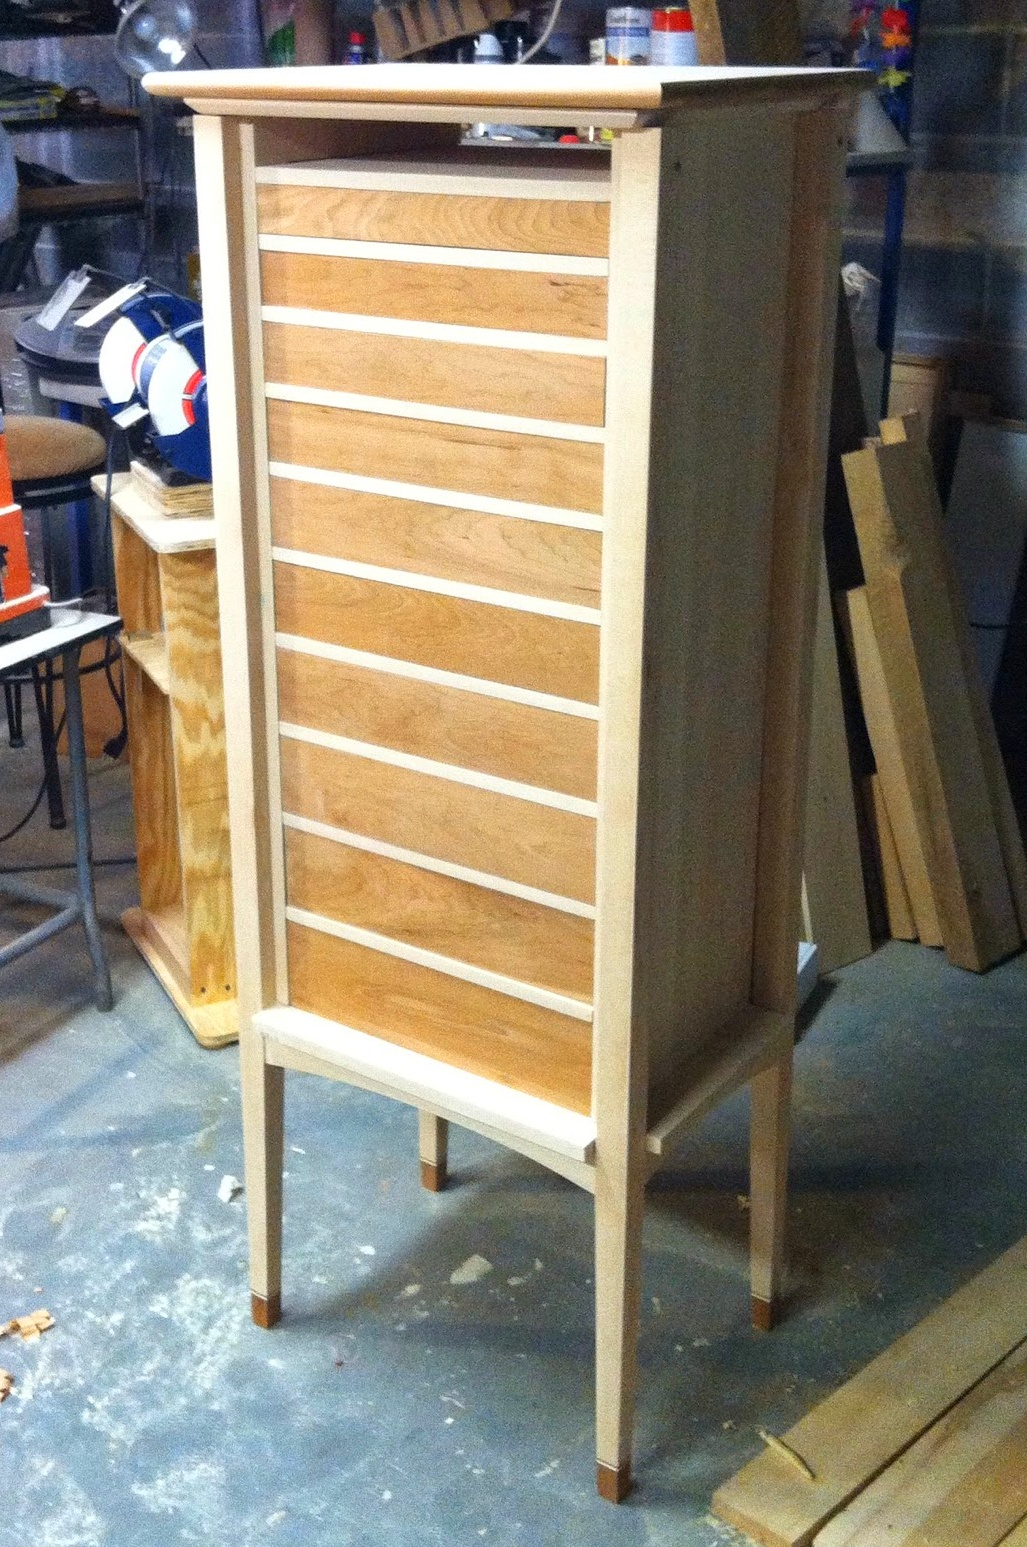 Cabinet with 10 drawers in place